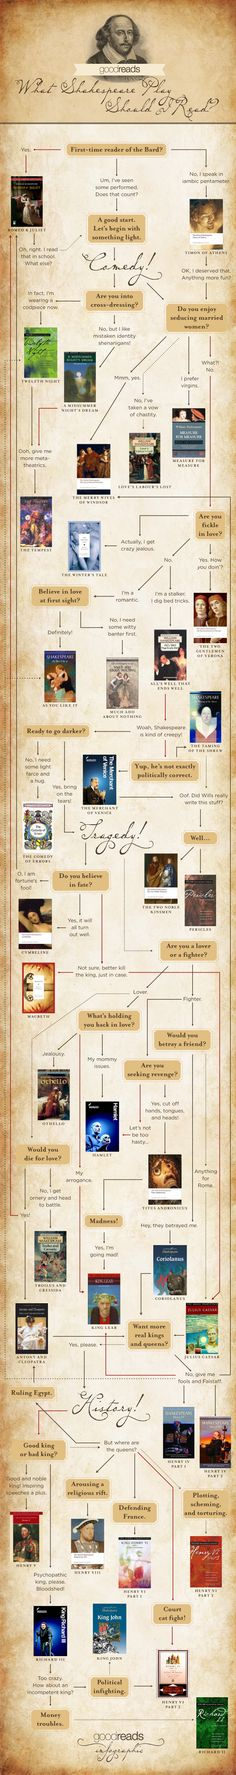 Happy Shakespeare Day! Where do you end up—comedy, history, or tragedy?